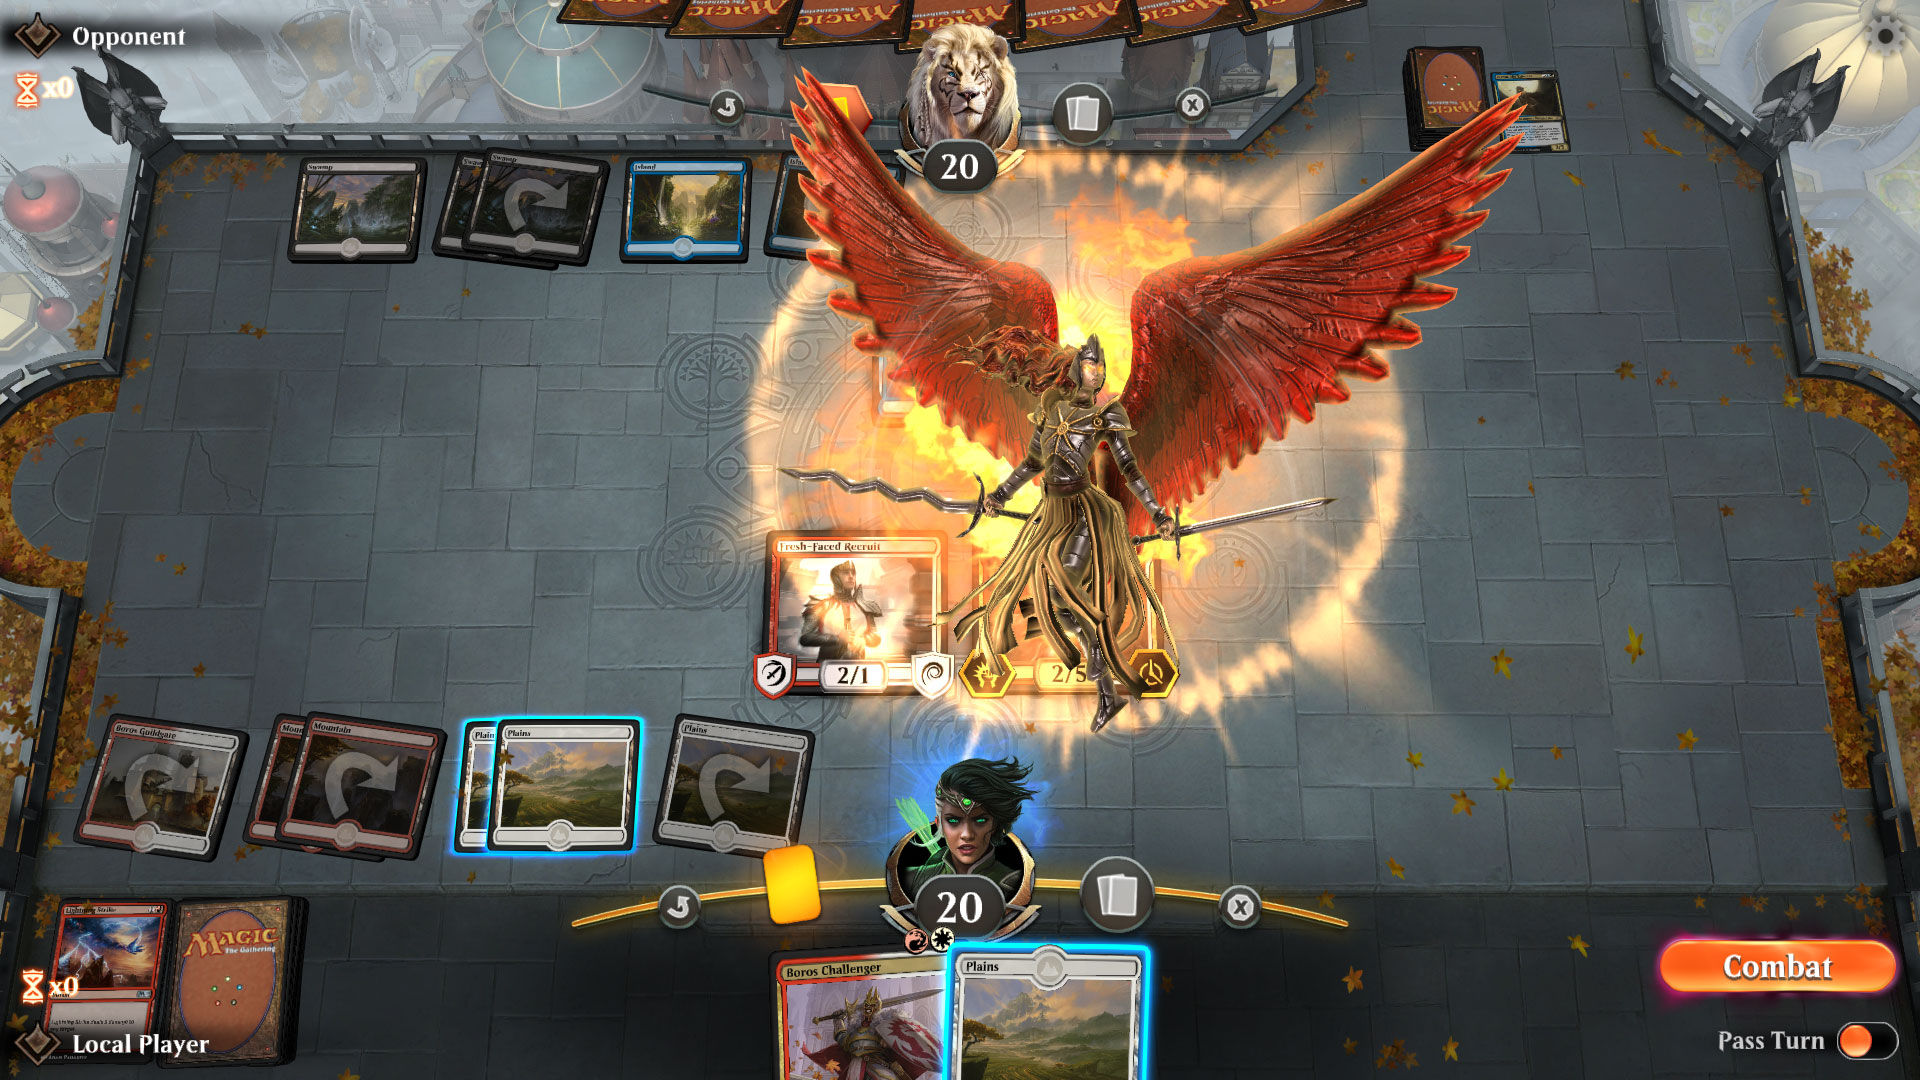 Magic: The Gathering is getting a pro league with $10